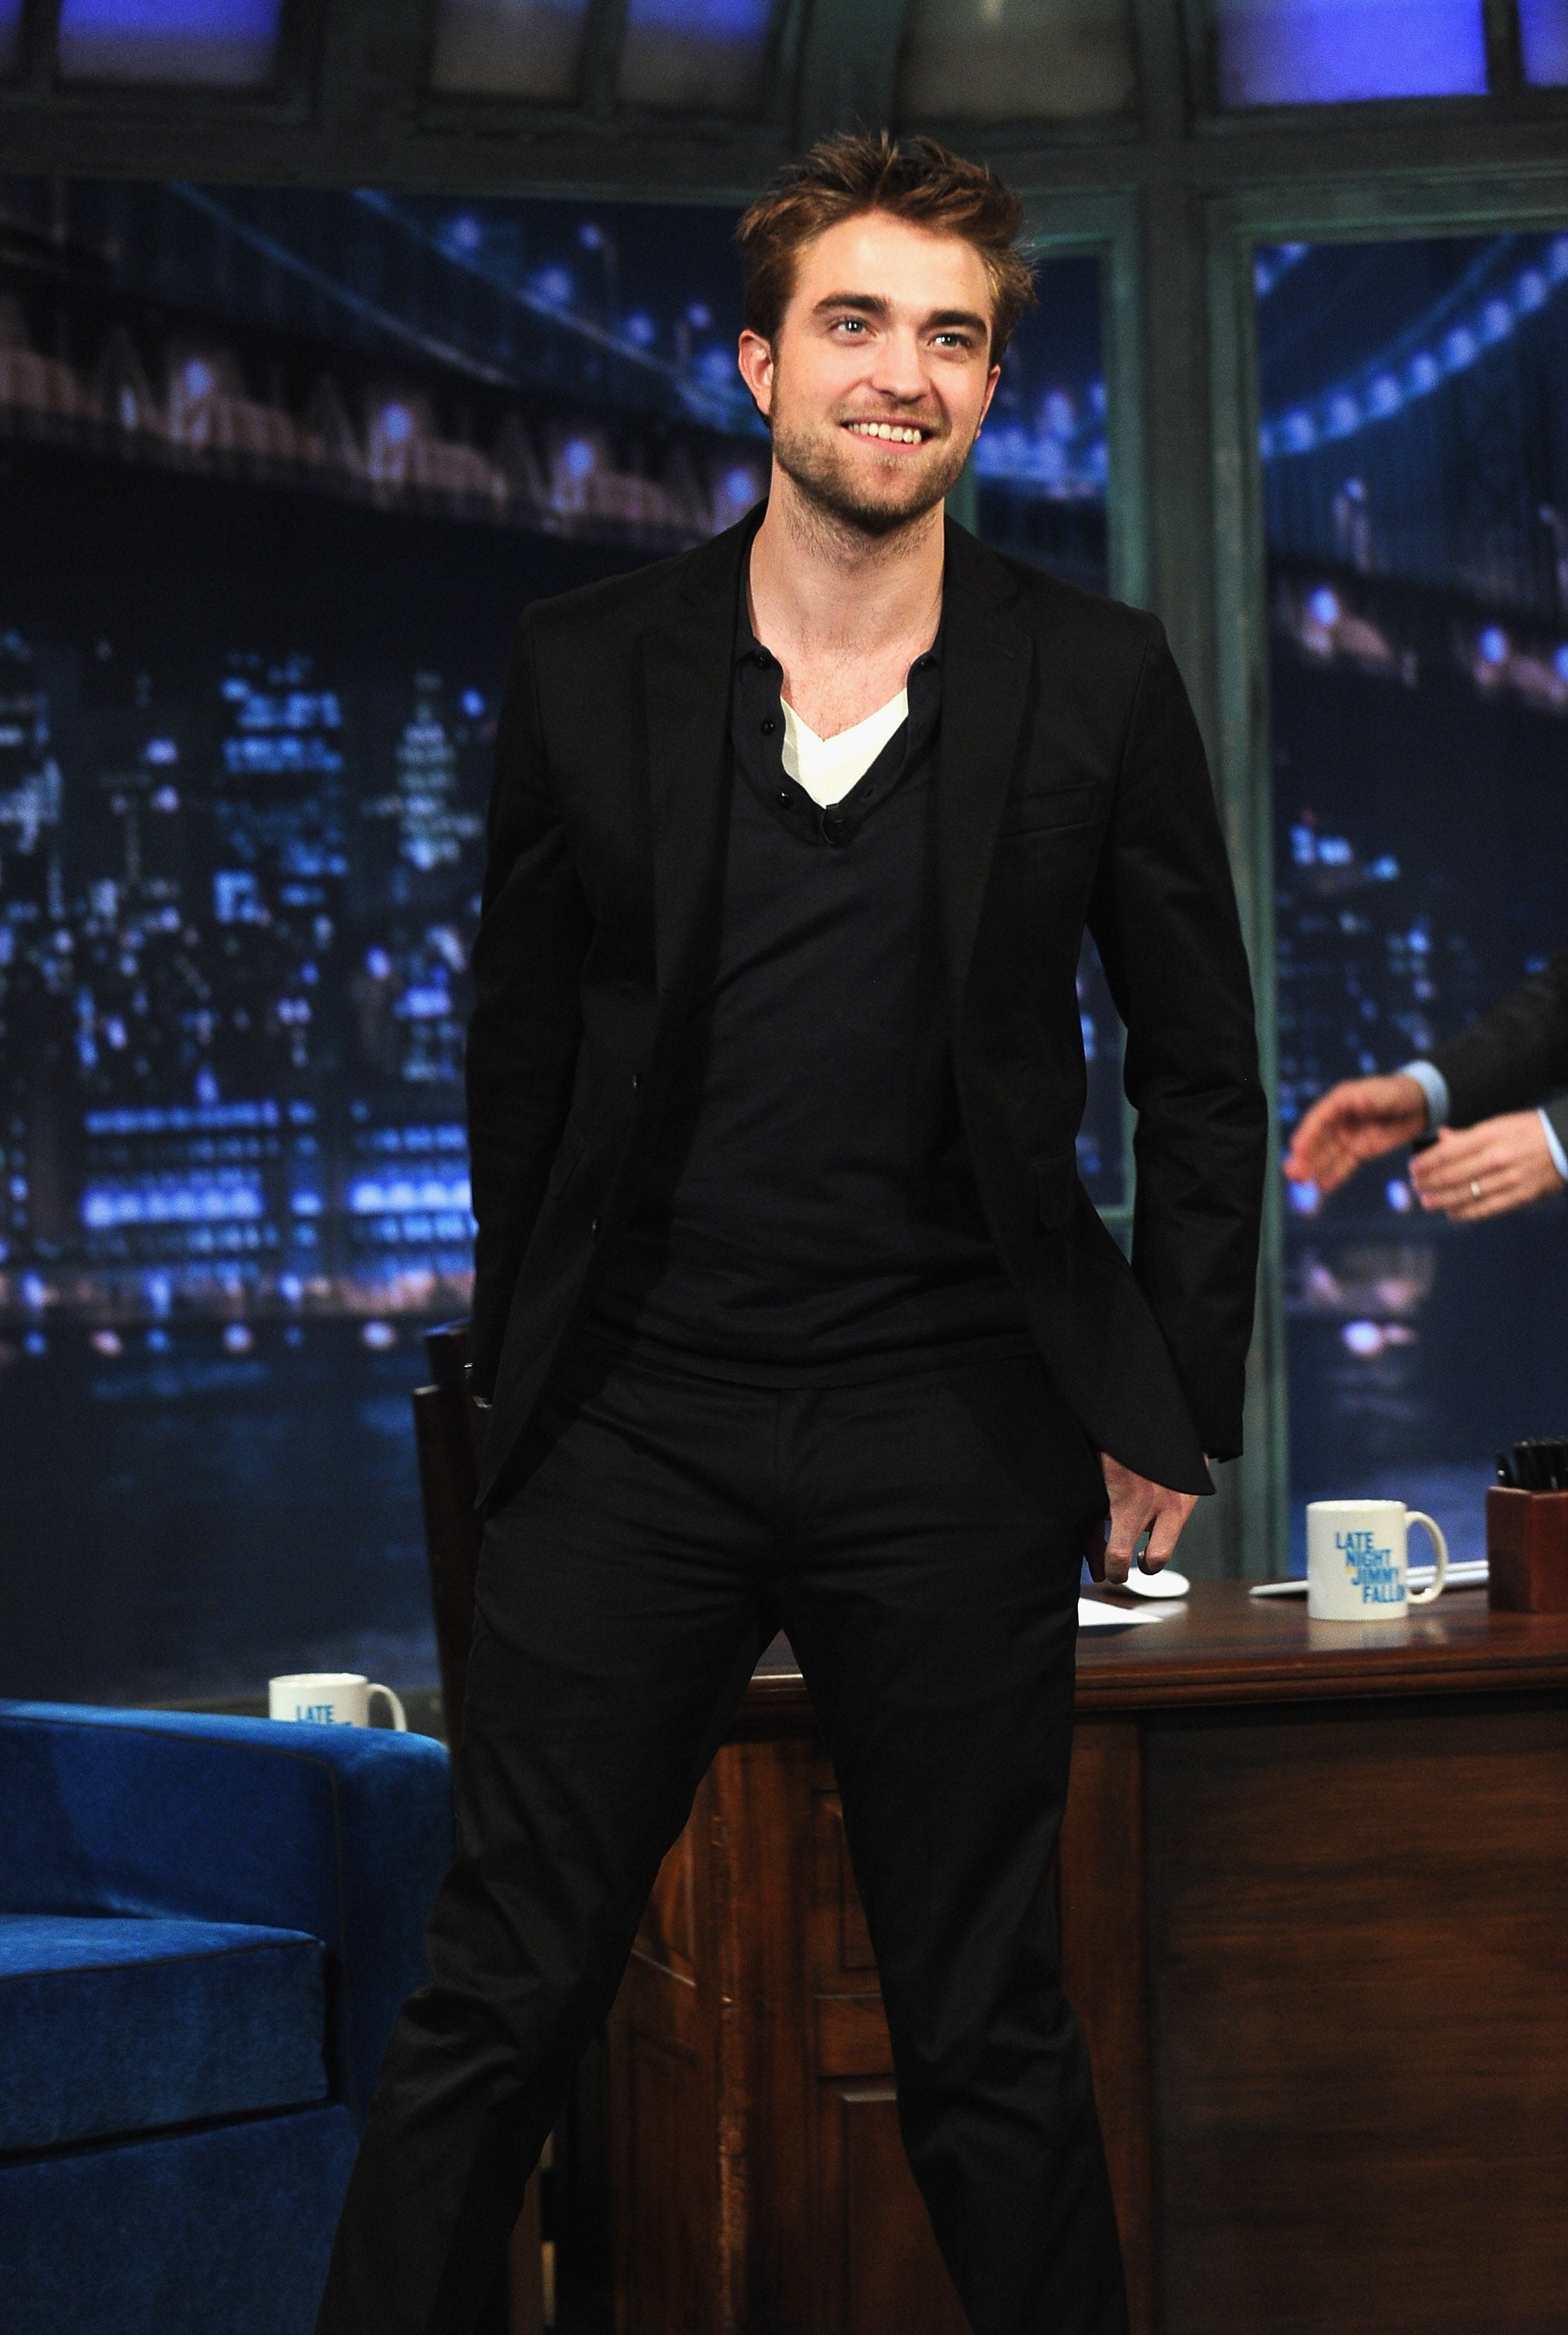 Rob is almost done with his press in NYC.